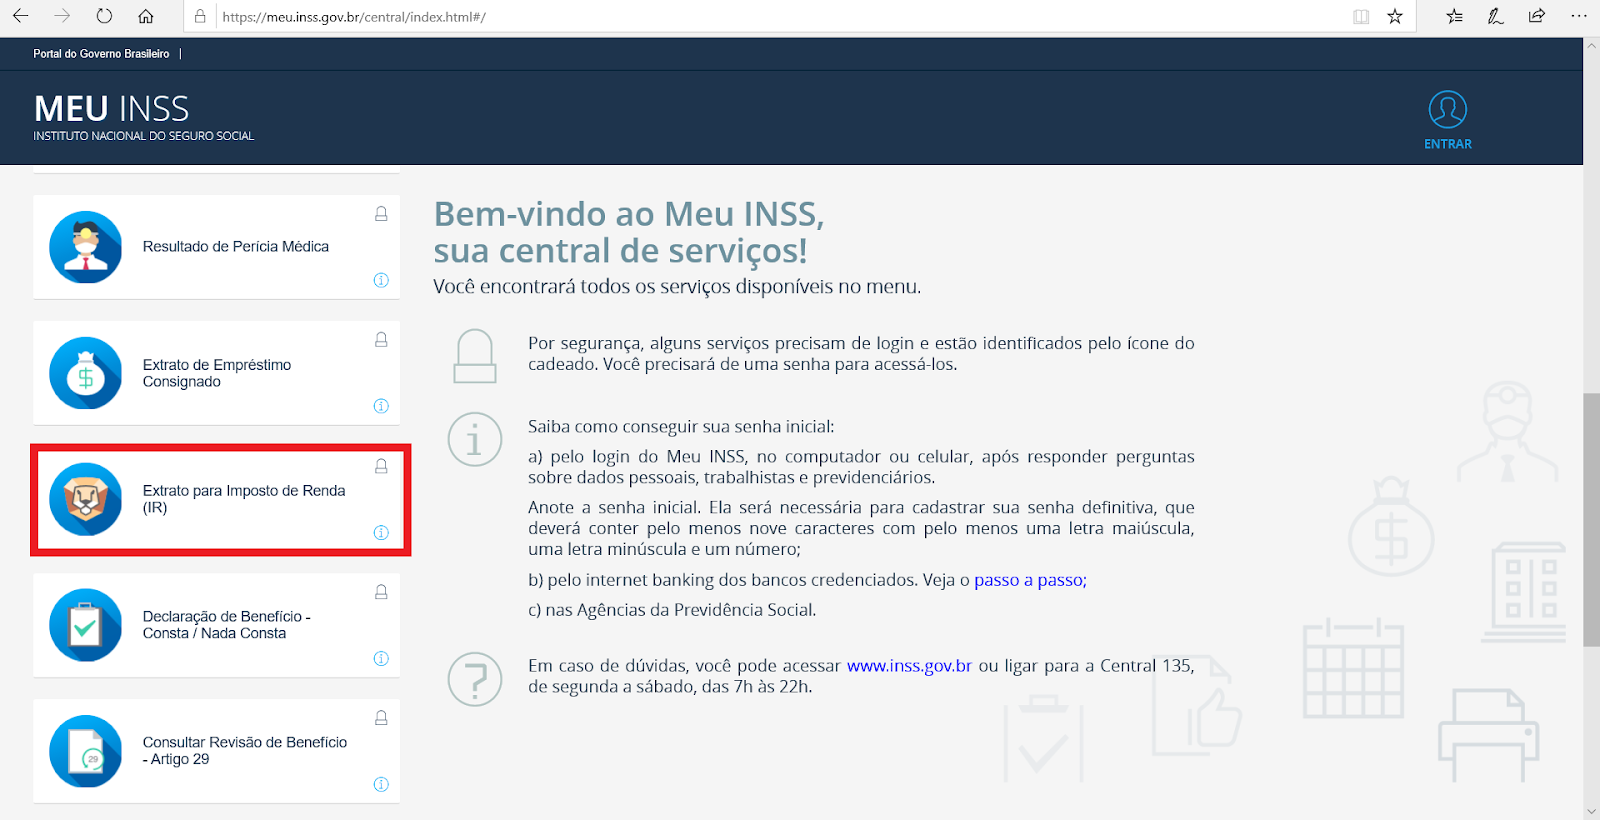 Informe de Rendimentos do INSS